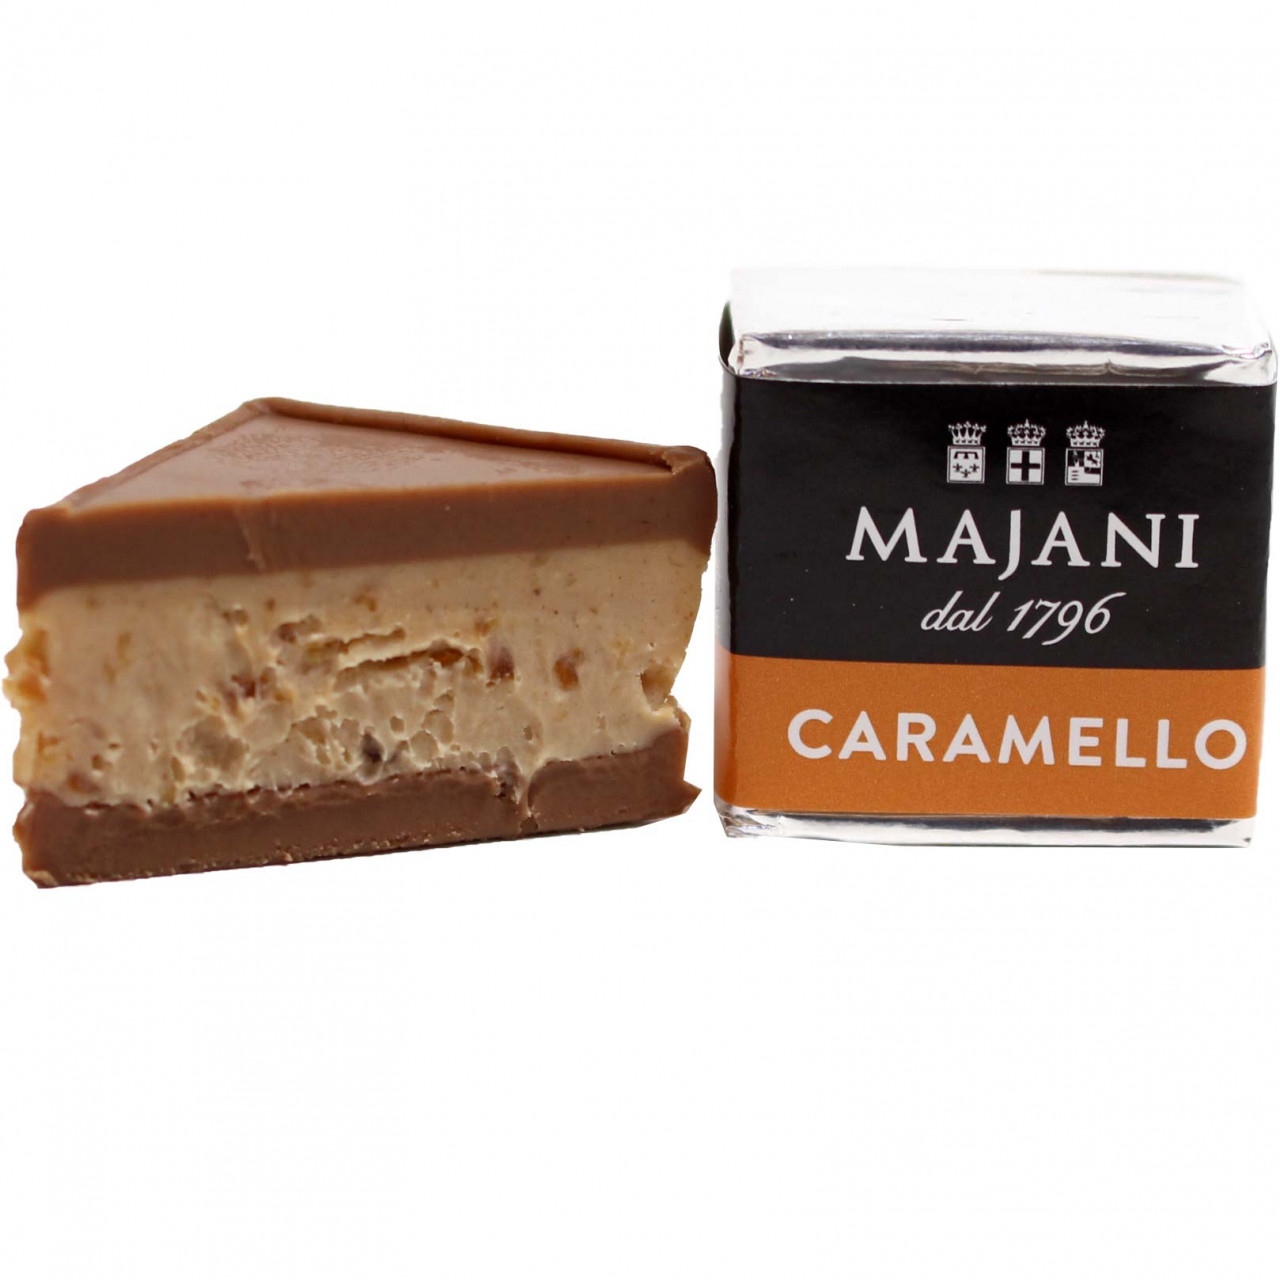 Cremino Carmello - Layered nougat praline with caramel - Sweet Fingerfood, alcohol free Chocolate, gluten free chocolate, palm oil free chocolate, Italy, italian chocolate, Chocolate with caramel - Chocolats-De-Luxe